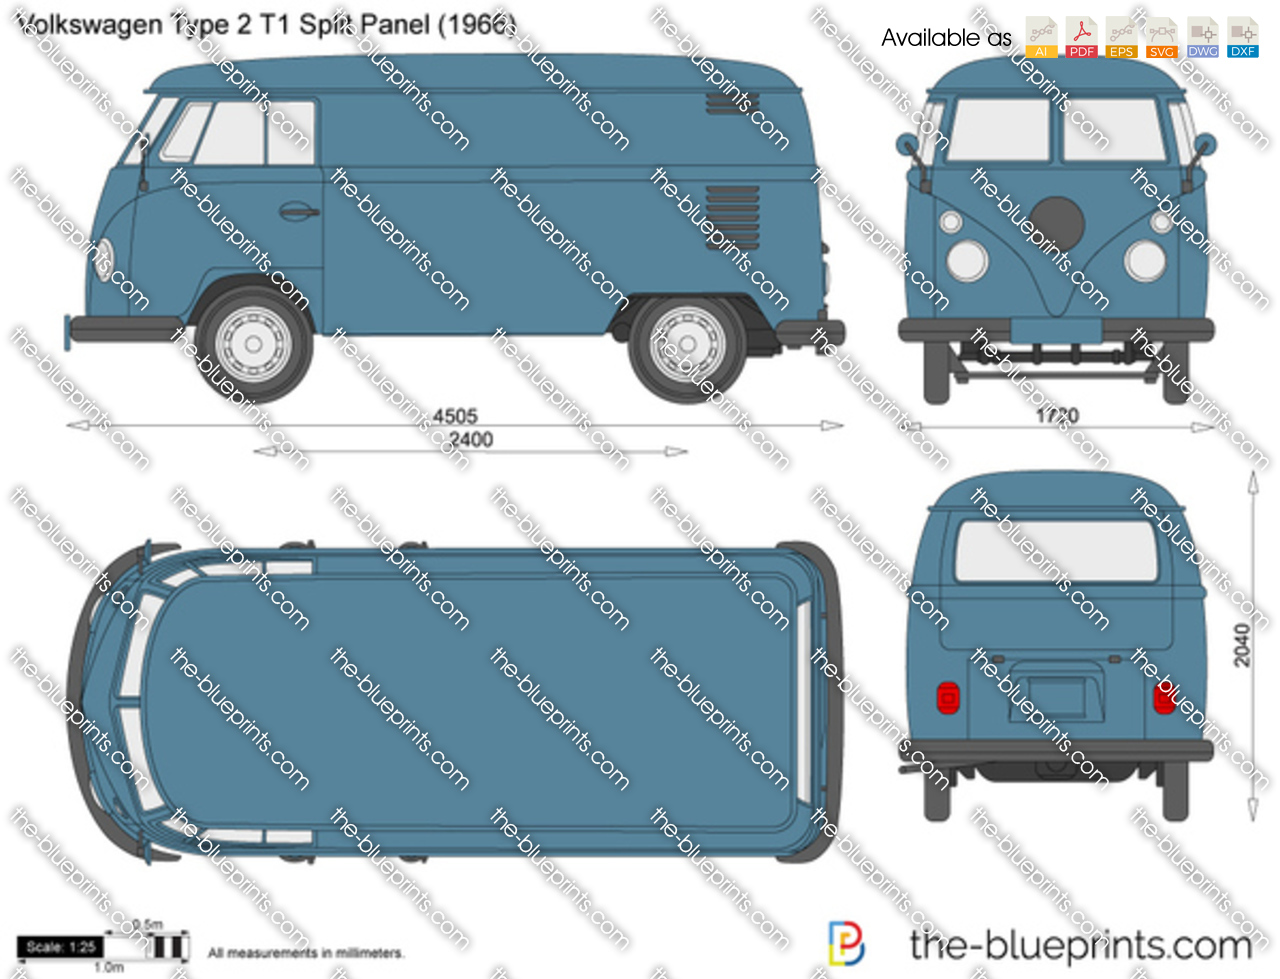 1966 Volkswagen Type 2 T1 Split Panel